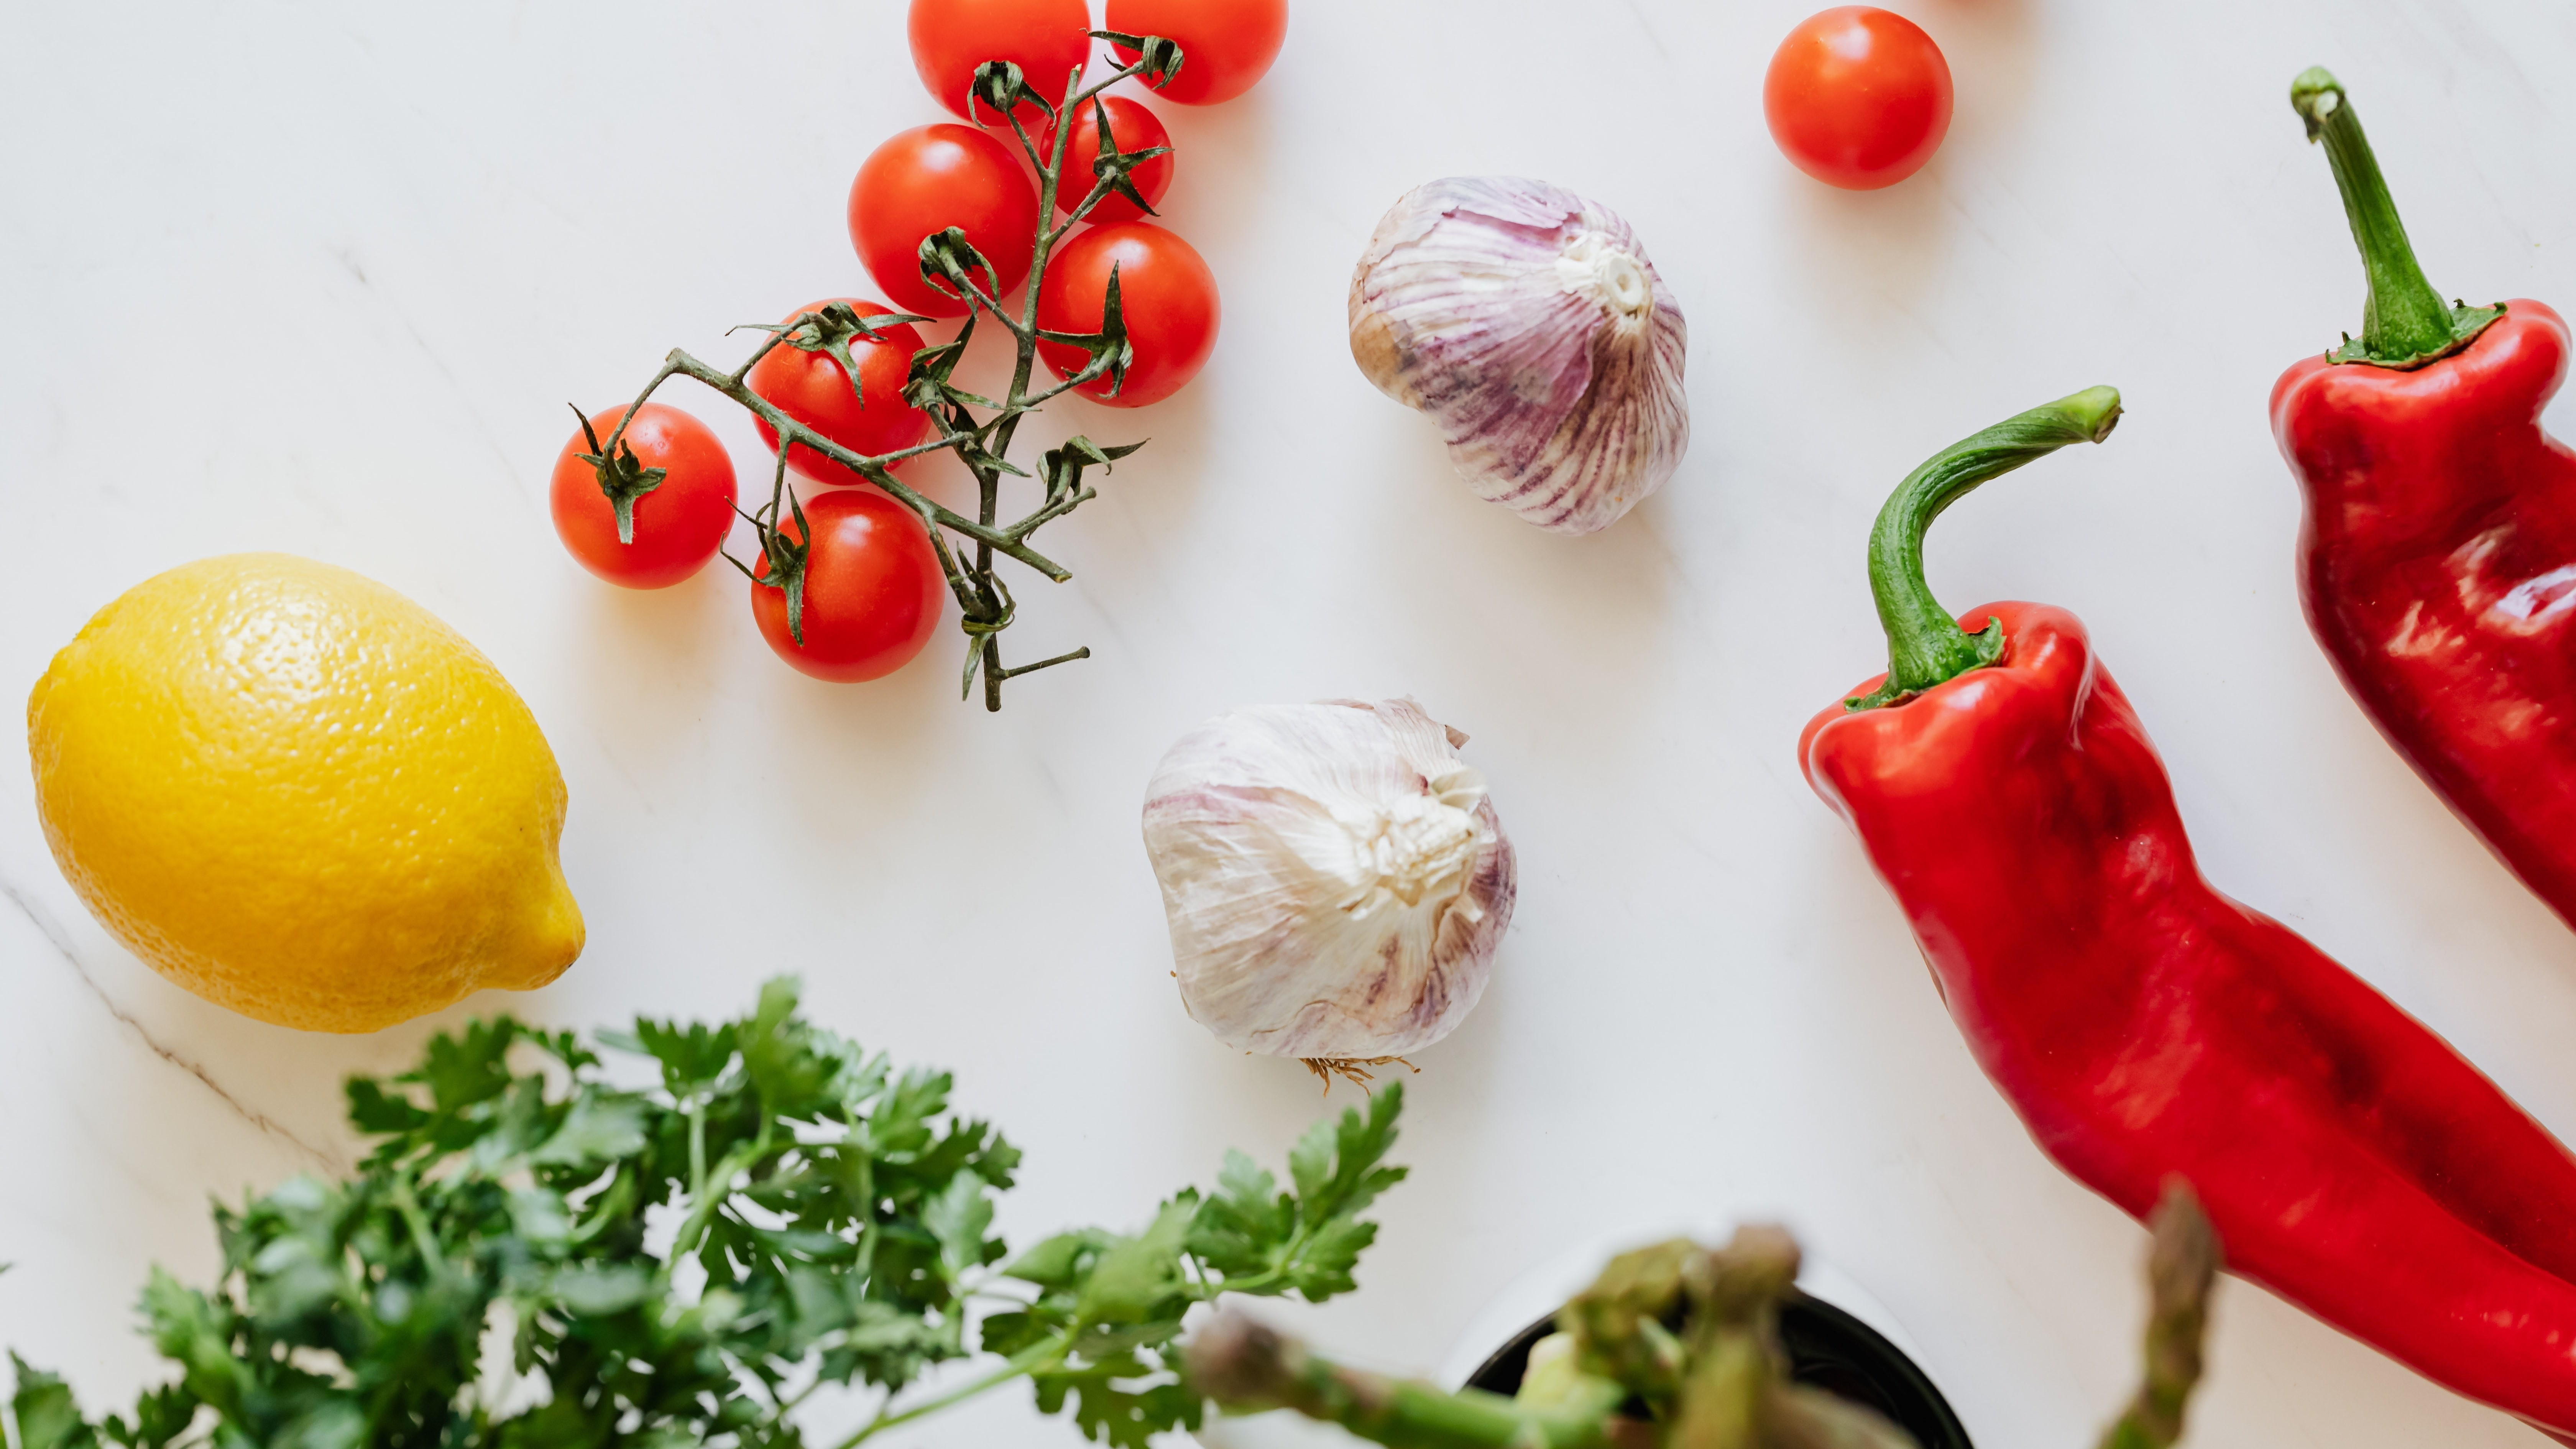 We have written an article about the best online grocery stores in Hong Kong.